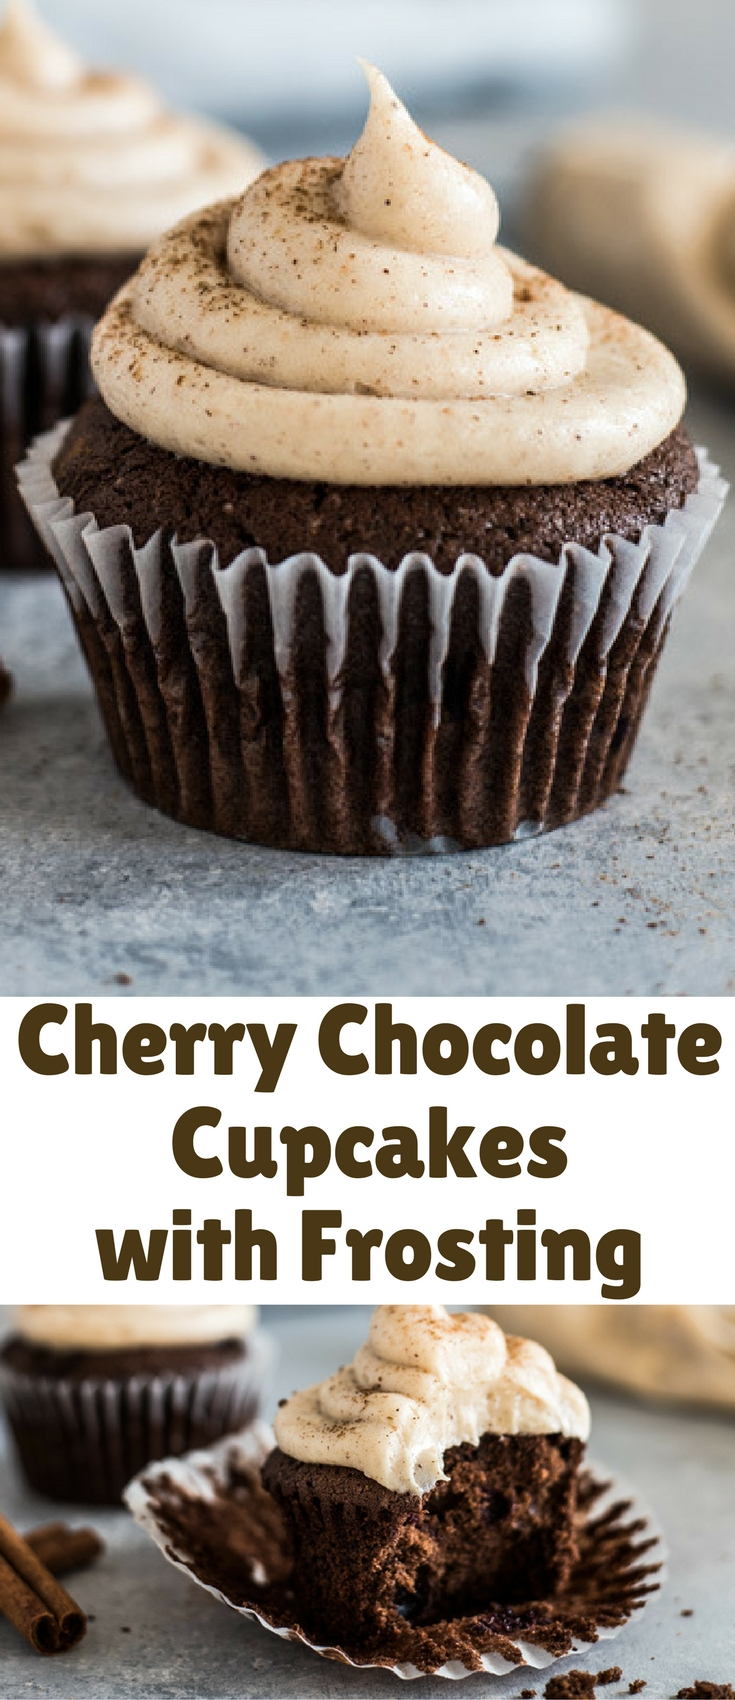 This Cherry Chocolate Cupcakes recipe with Cinnamon Cream Cheese Frosting is decadent, fluffy and perfectly moist. Treat yourself!